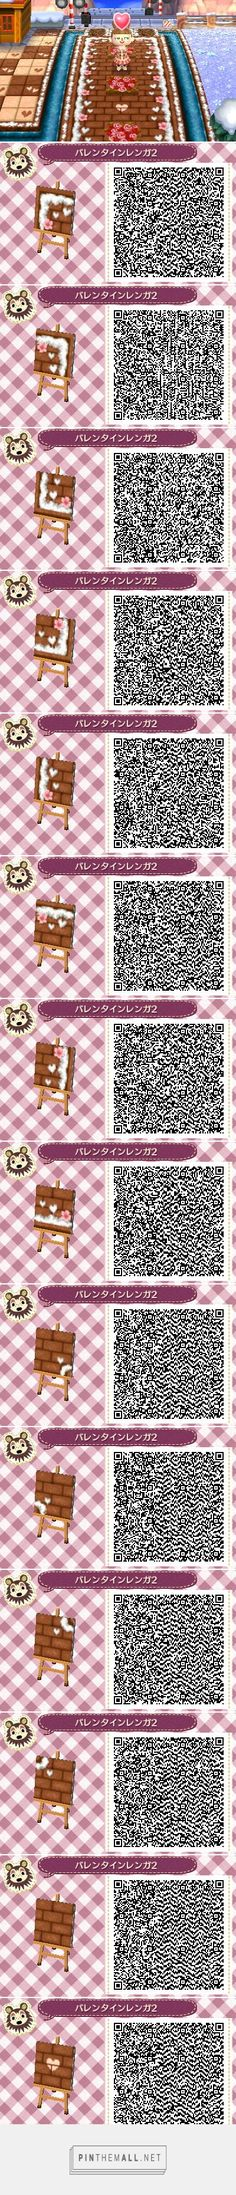 QR path: Sakura and snow border brown bricks w hearts accents